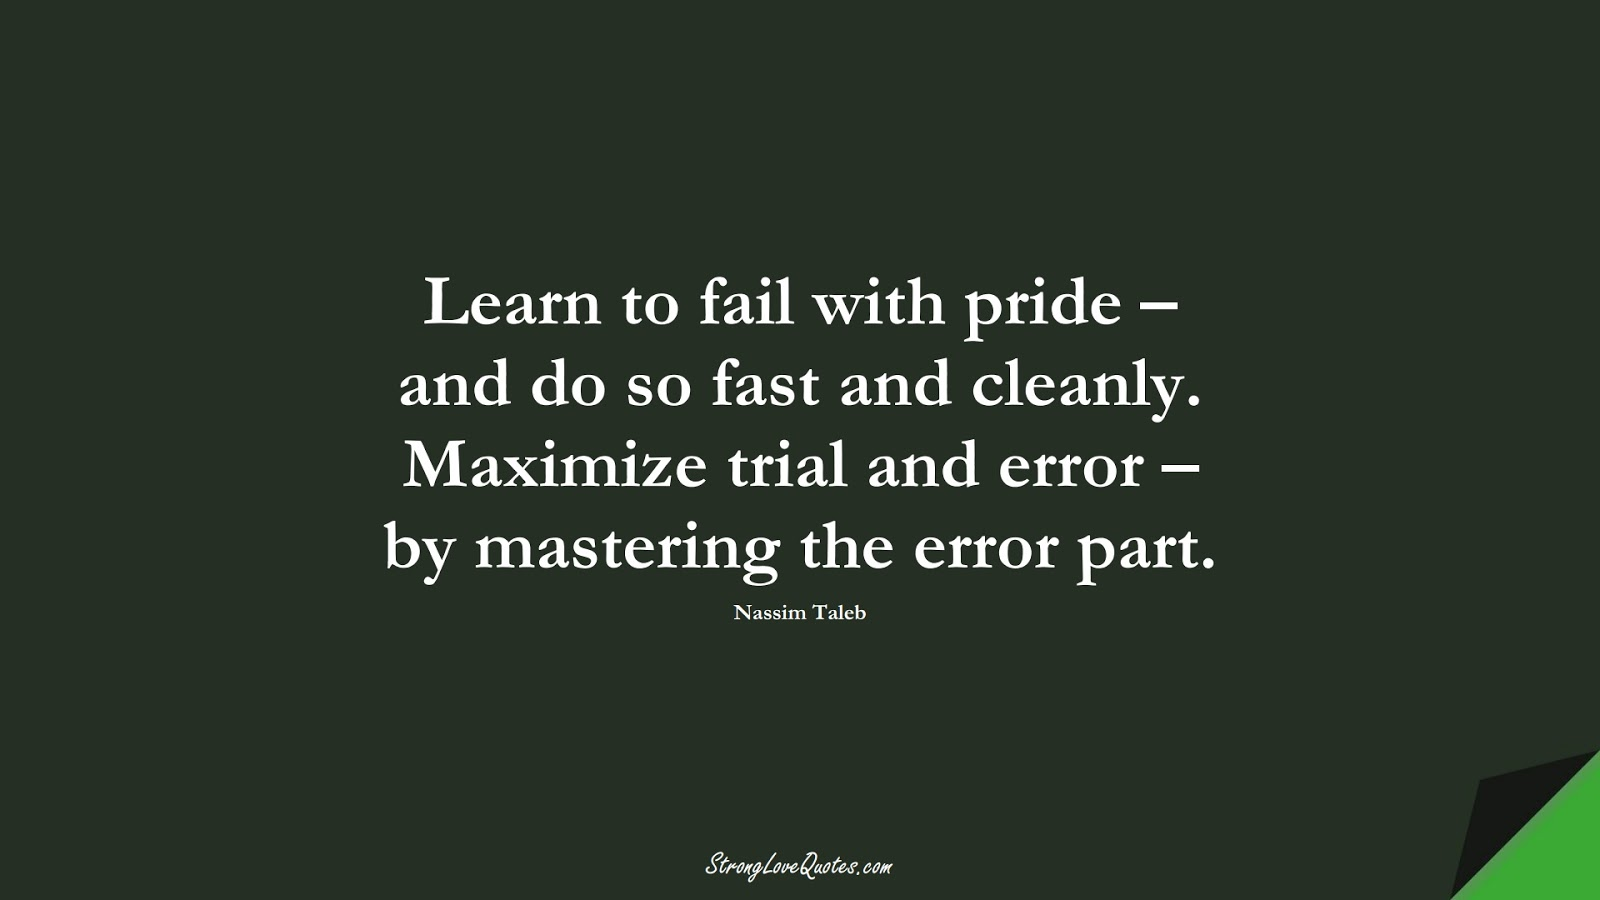 Learn to fail with pride – and do so fast and cleanly. Maximize trial and error – by mastering the error part. (Nassim Taleb);  #LearningQuotes